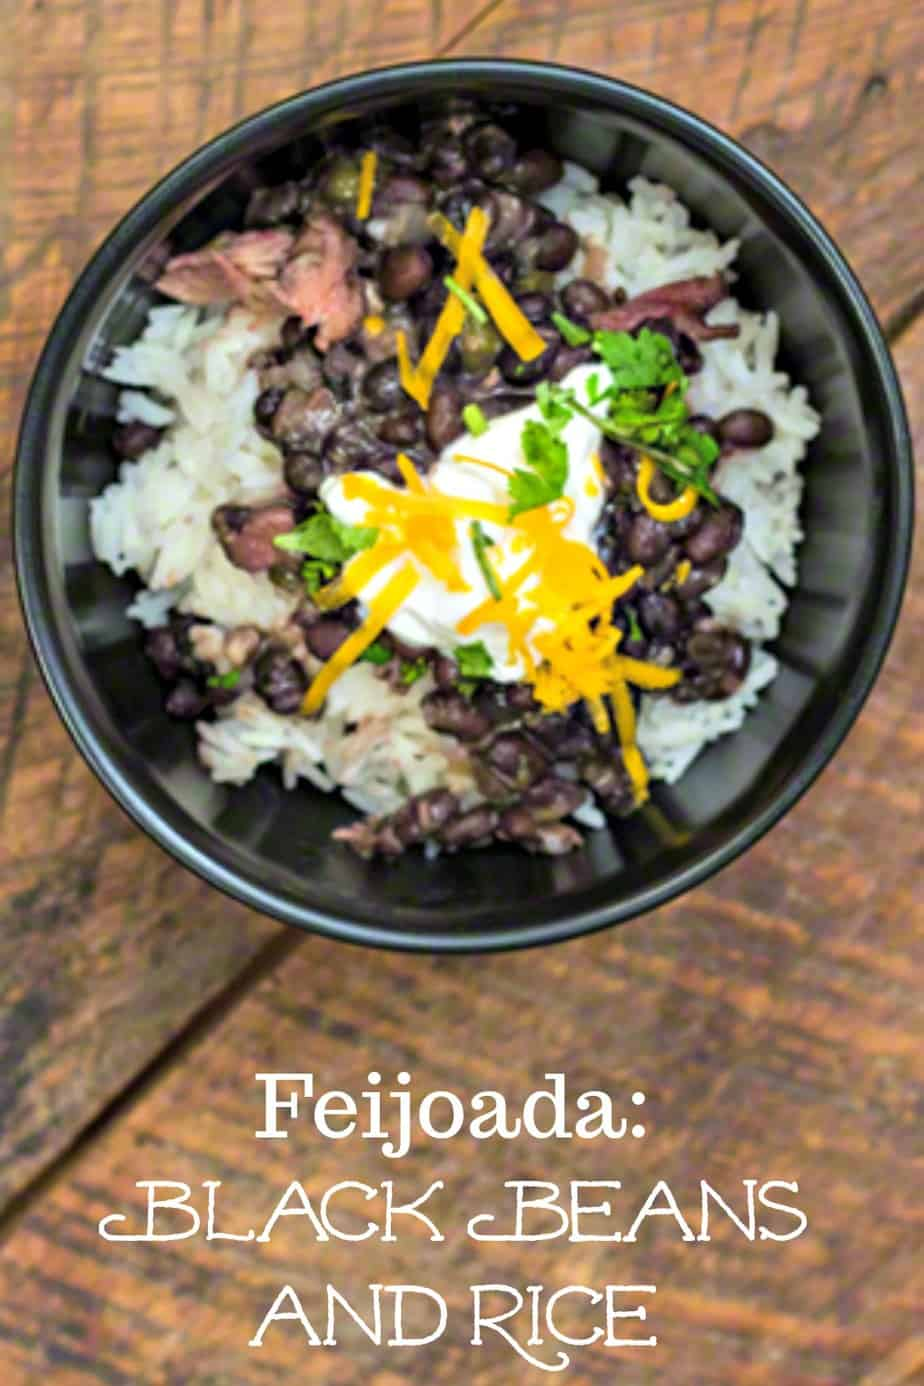 Feijoada, or, Brazilian Black Beans and Rice is the National Dish of Brazil. #blackbeans #Brazilian #recipe #frugal